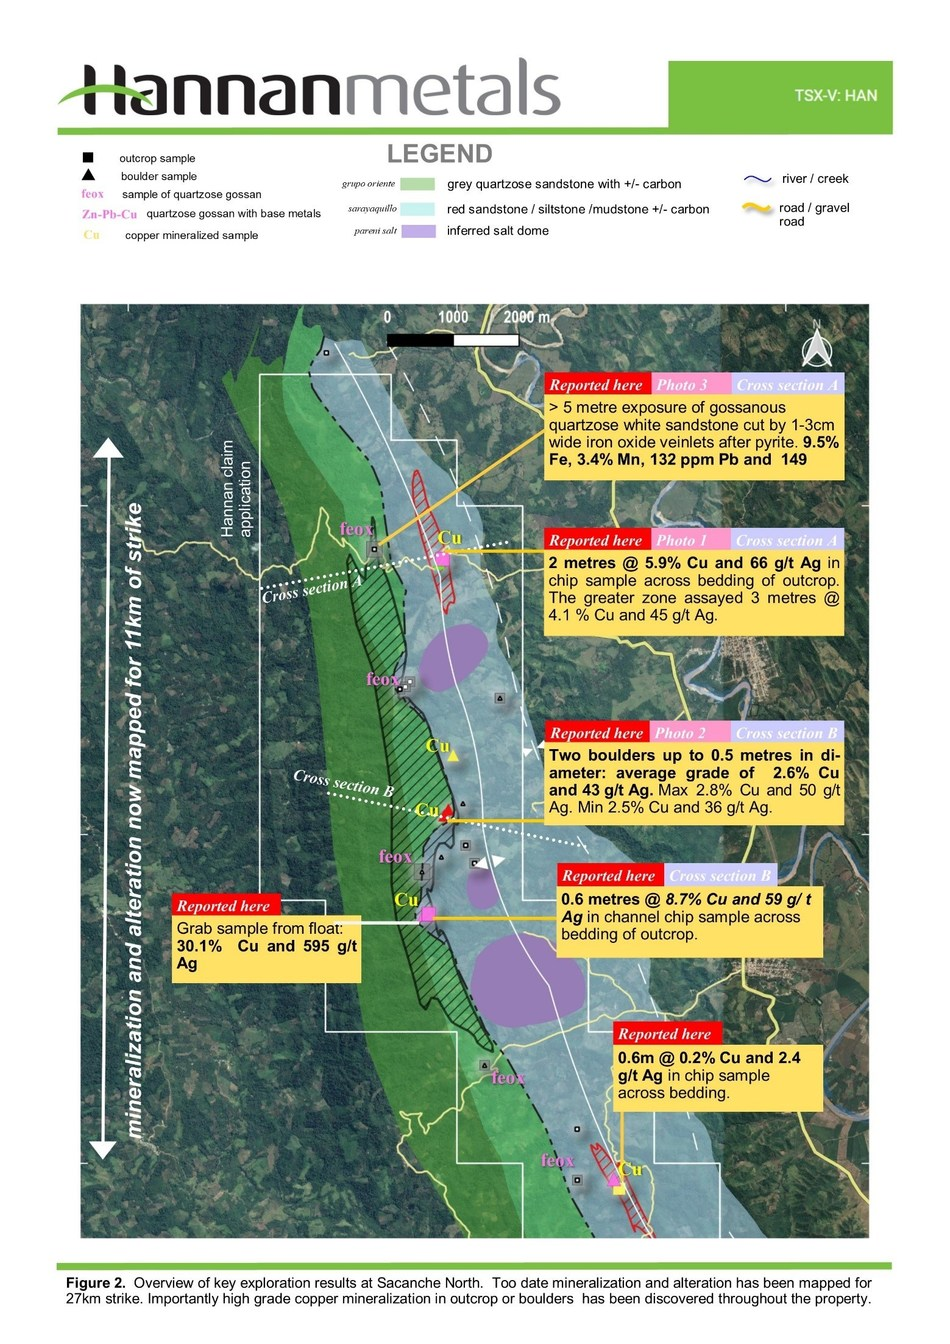 Figure 2.  Overview of key exploration results at Sacanche North. Too date mineralization and alteration has been mapped for 27km strike. Importantly high grade copper mineralization in outcrop or boulders has been discovered throughout the property. (CNW Group/Hannan Metals Ltd.)